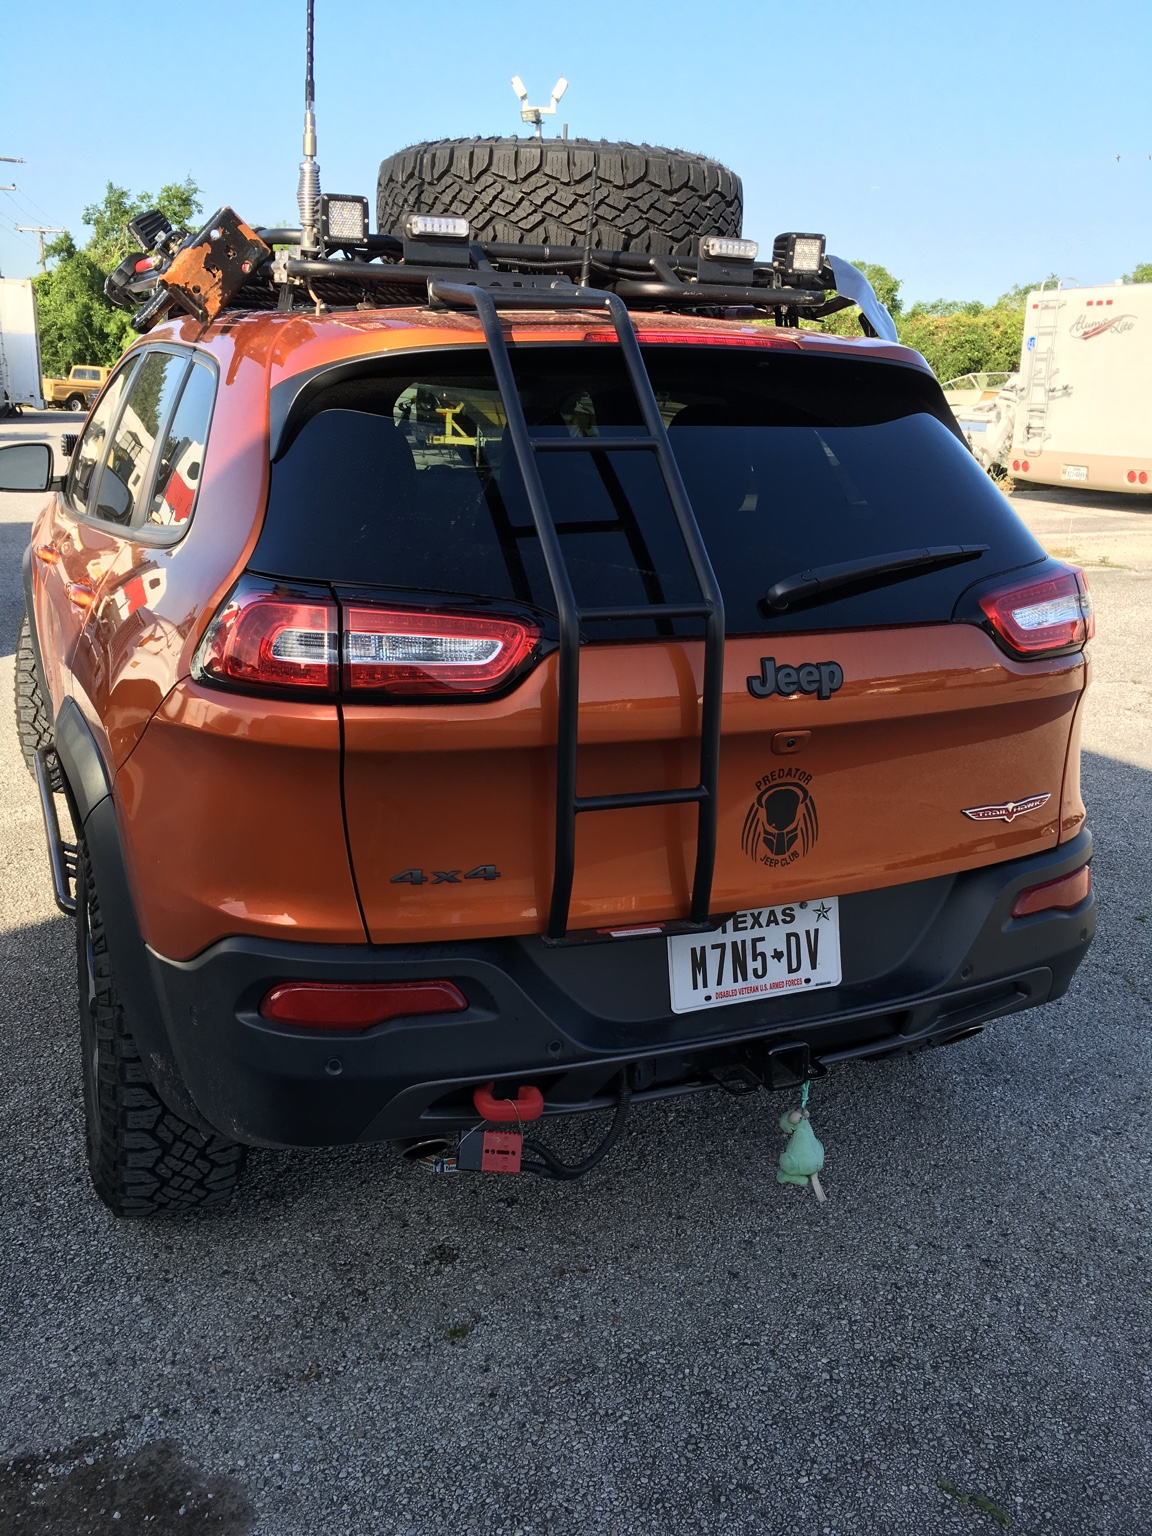 2014 Jeep Cherokee Forums Looking For Gobi Ladder Pictures